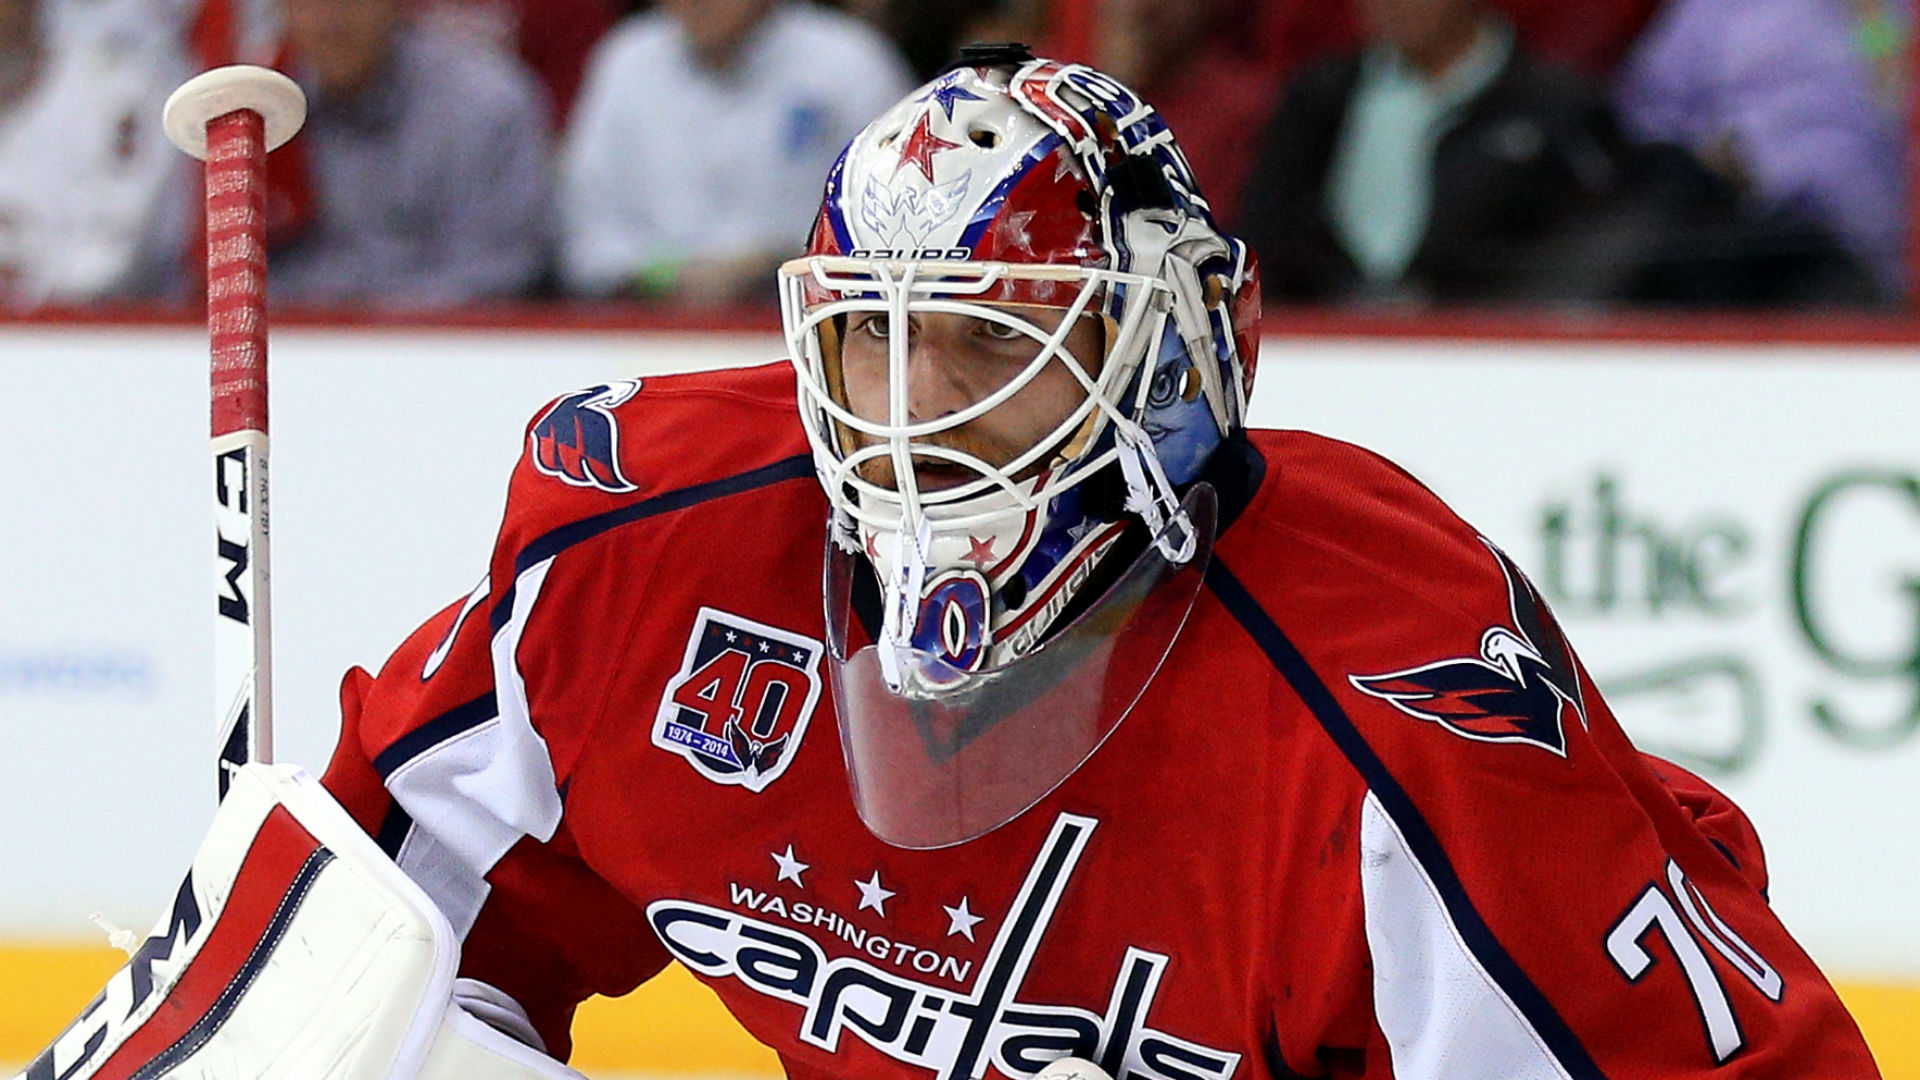 Stanley Cup playoffs roundup: Holtby, Capitals blank Rangers, take 2-1 series lead